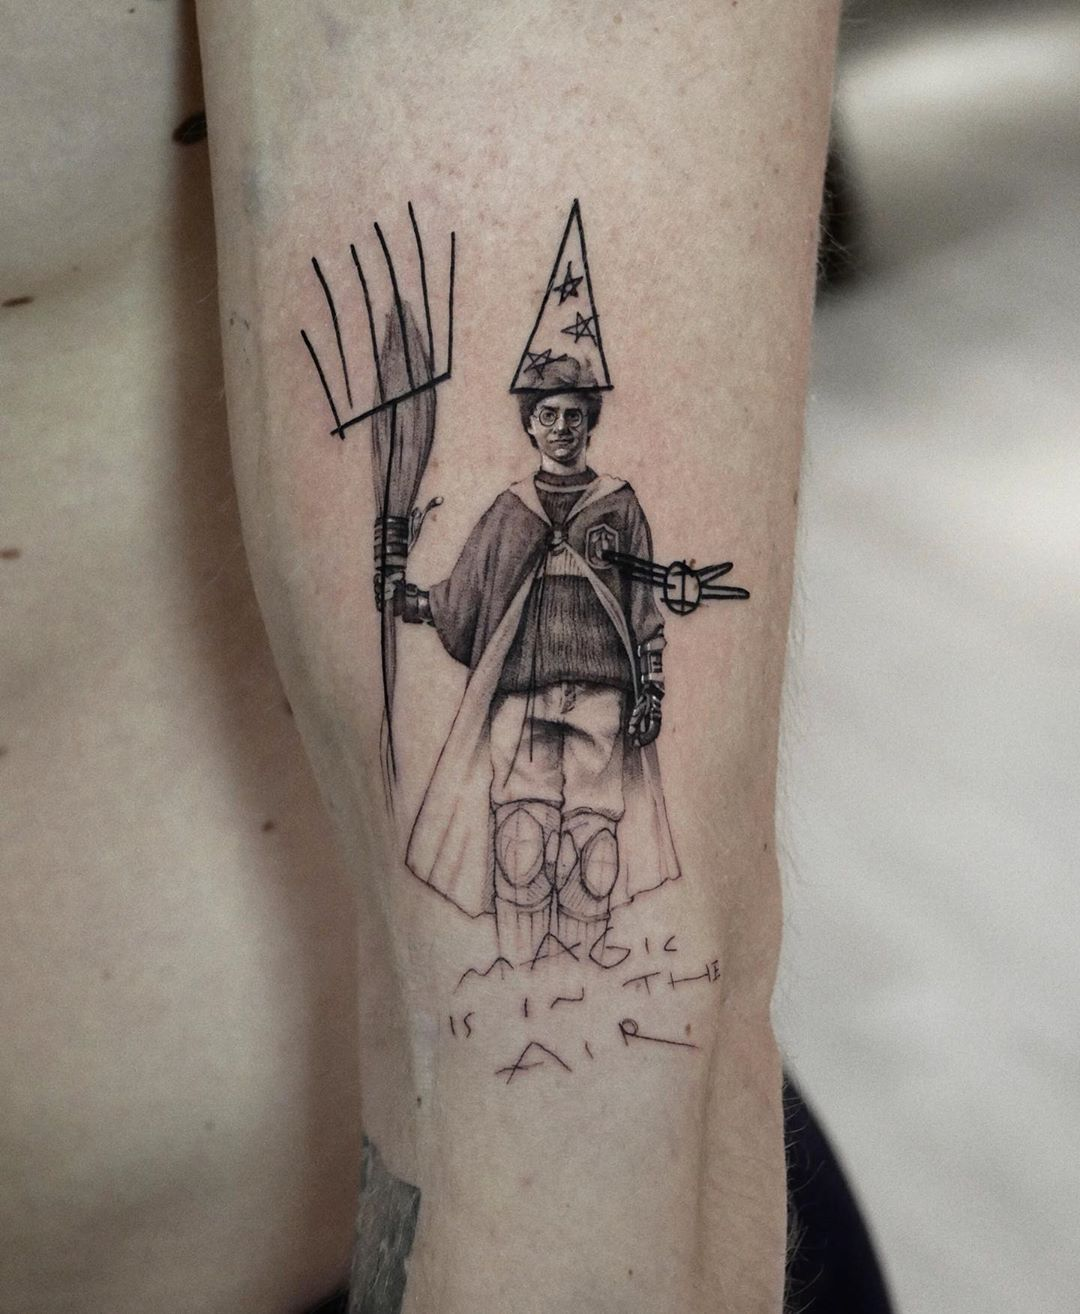 19 Harry Potter Tattoos For Wizards Muggles And Mudbloods Alike In 2020 Tattoos Harry Potter Tattoos Fandom Tattoos